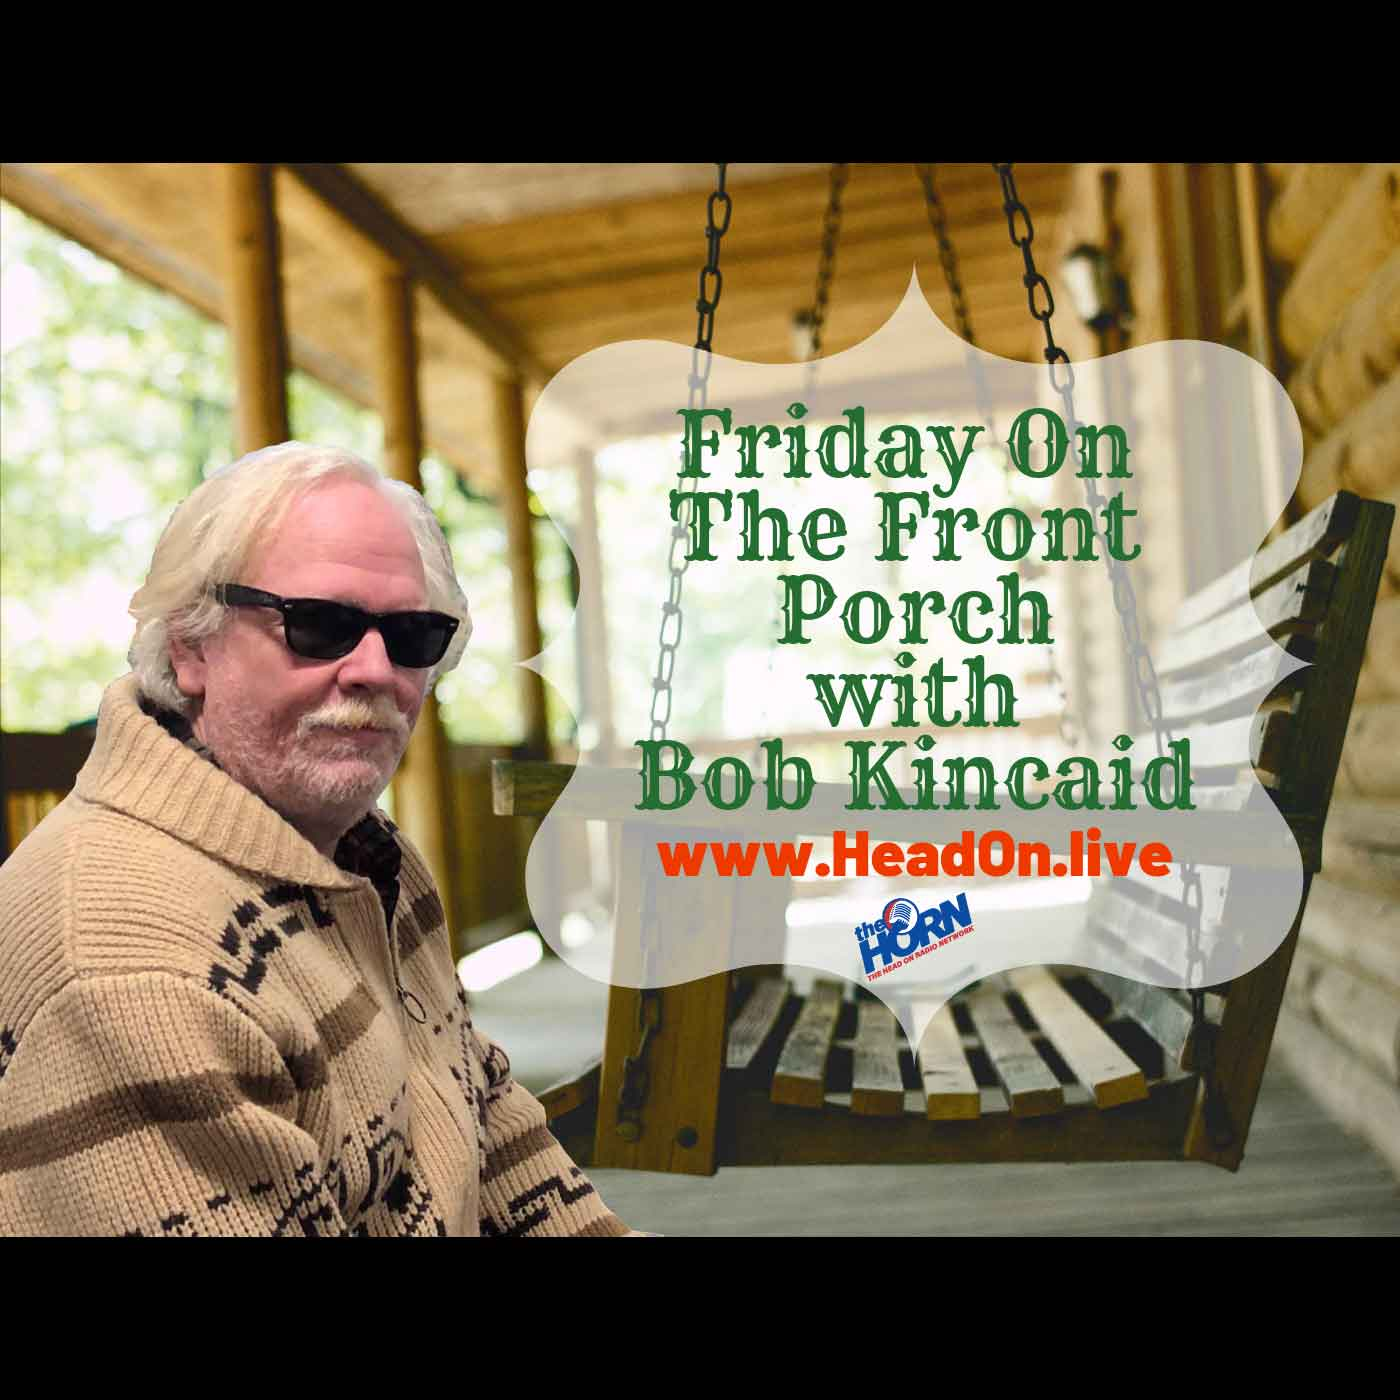 Friday-Rona-The-Front-Porch, Head-ON With Bob Kincaid, 29 May 2020